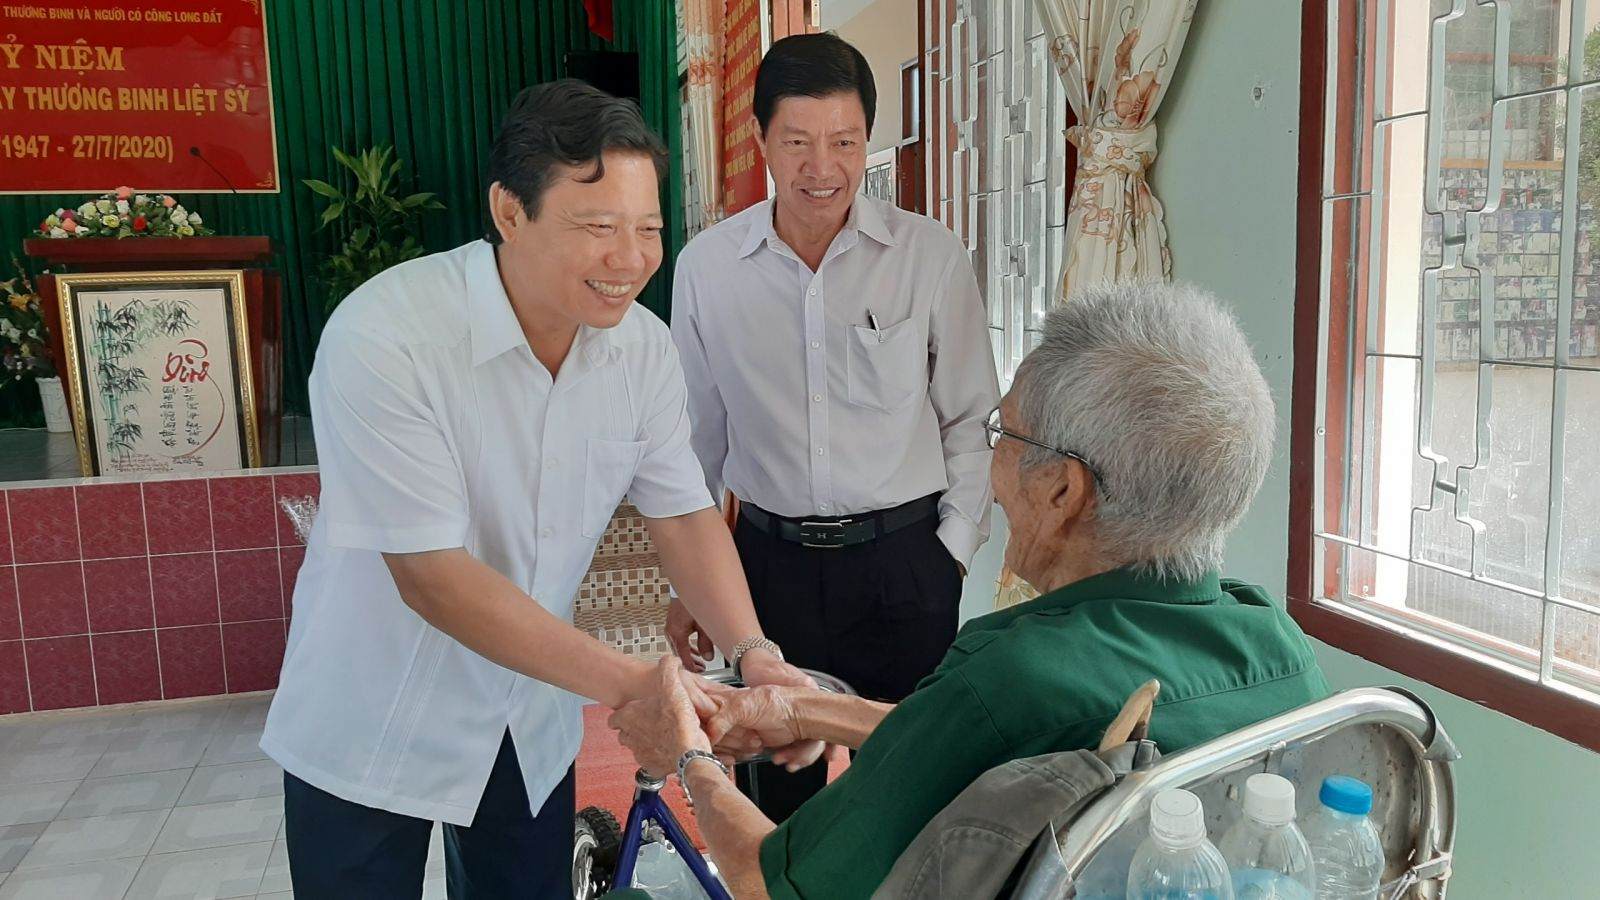 Vice Chairman of Long An People's Committee Pham Tan Hoa (L) visits and presents gifts to seriously wounded soldiers in Long Dat